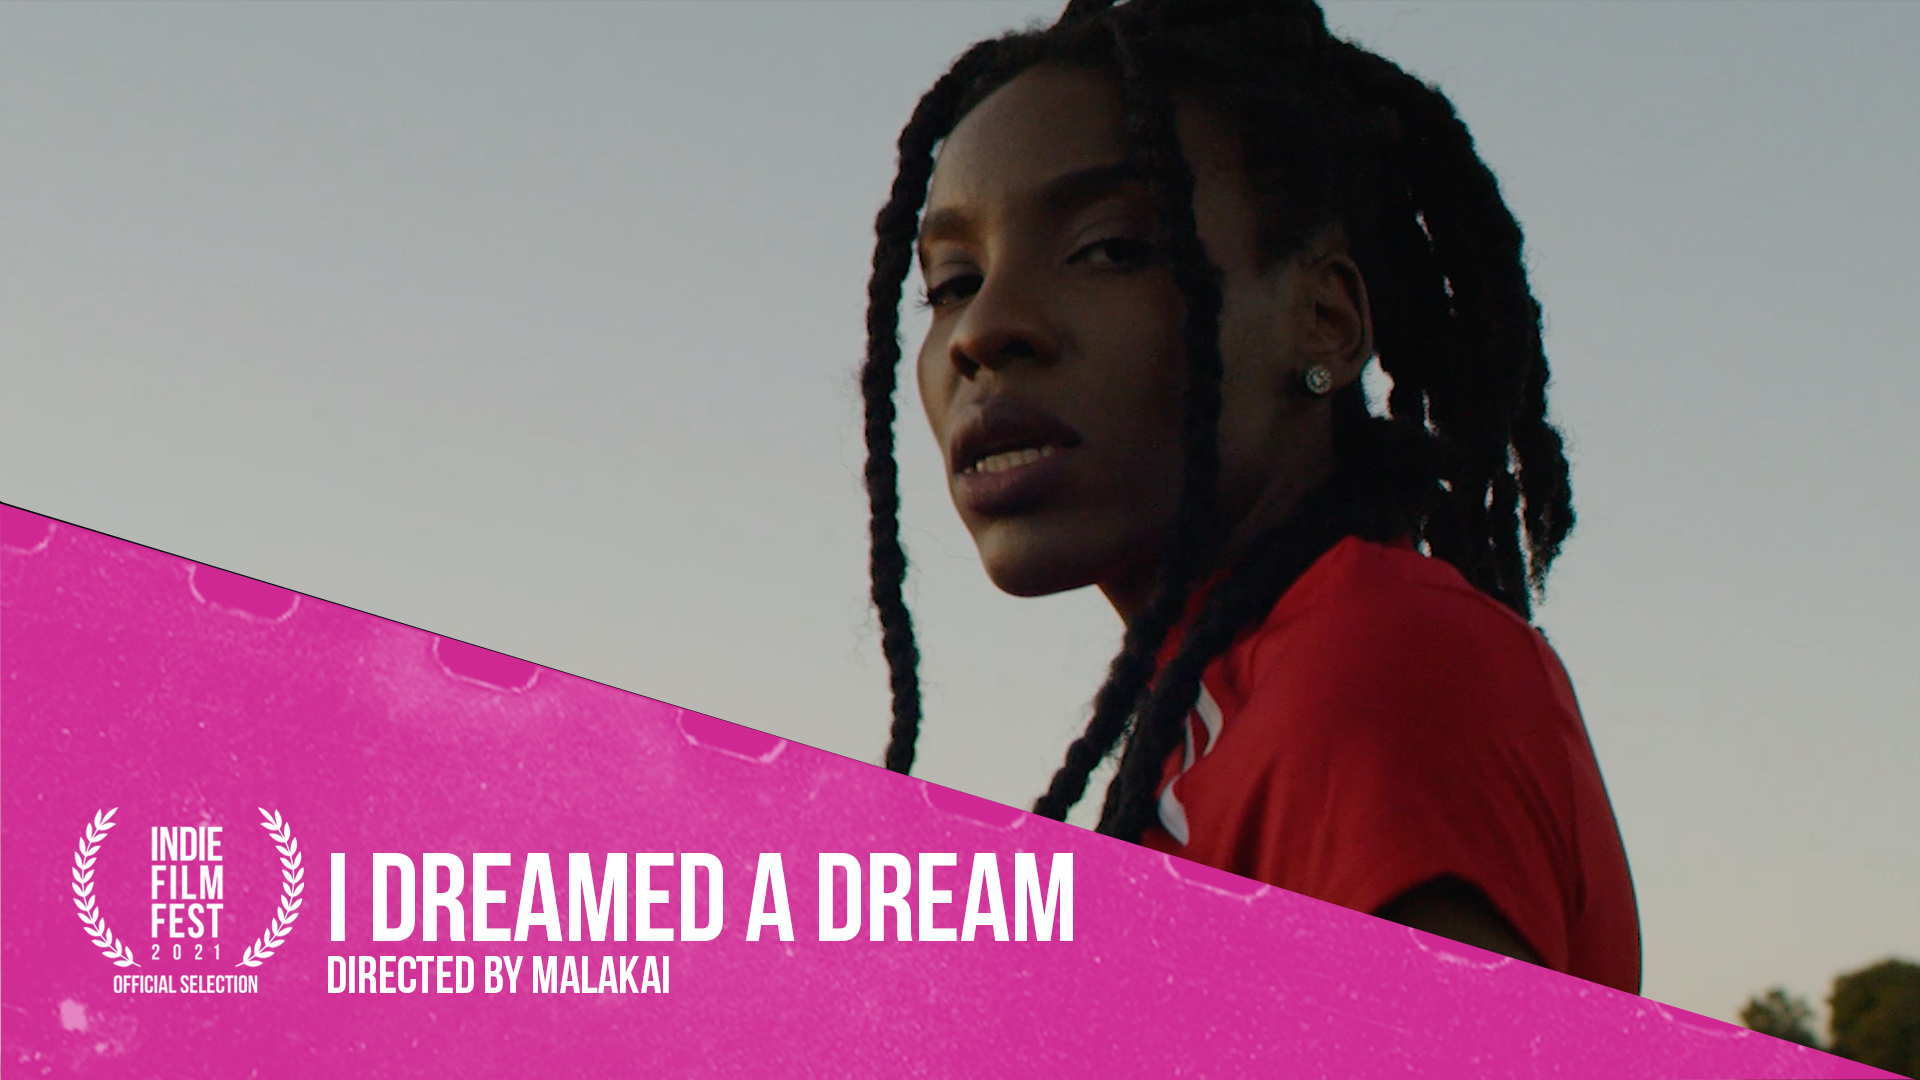 Idreamedadream